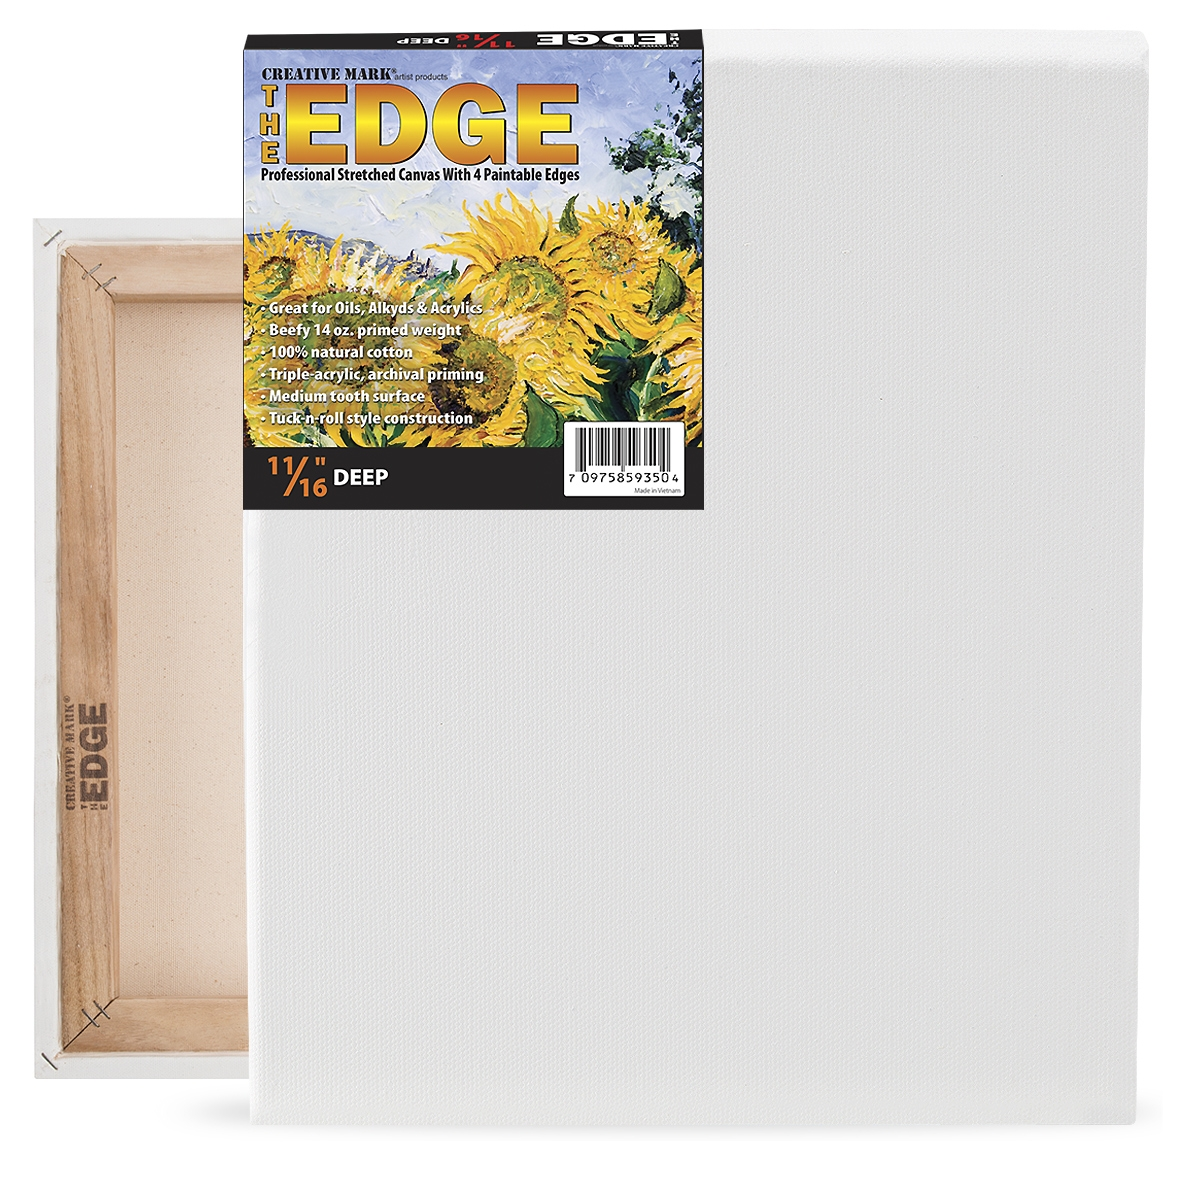 The Edge All Media Cotton Deluxe Stretched Canvas 11/16 Deep